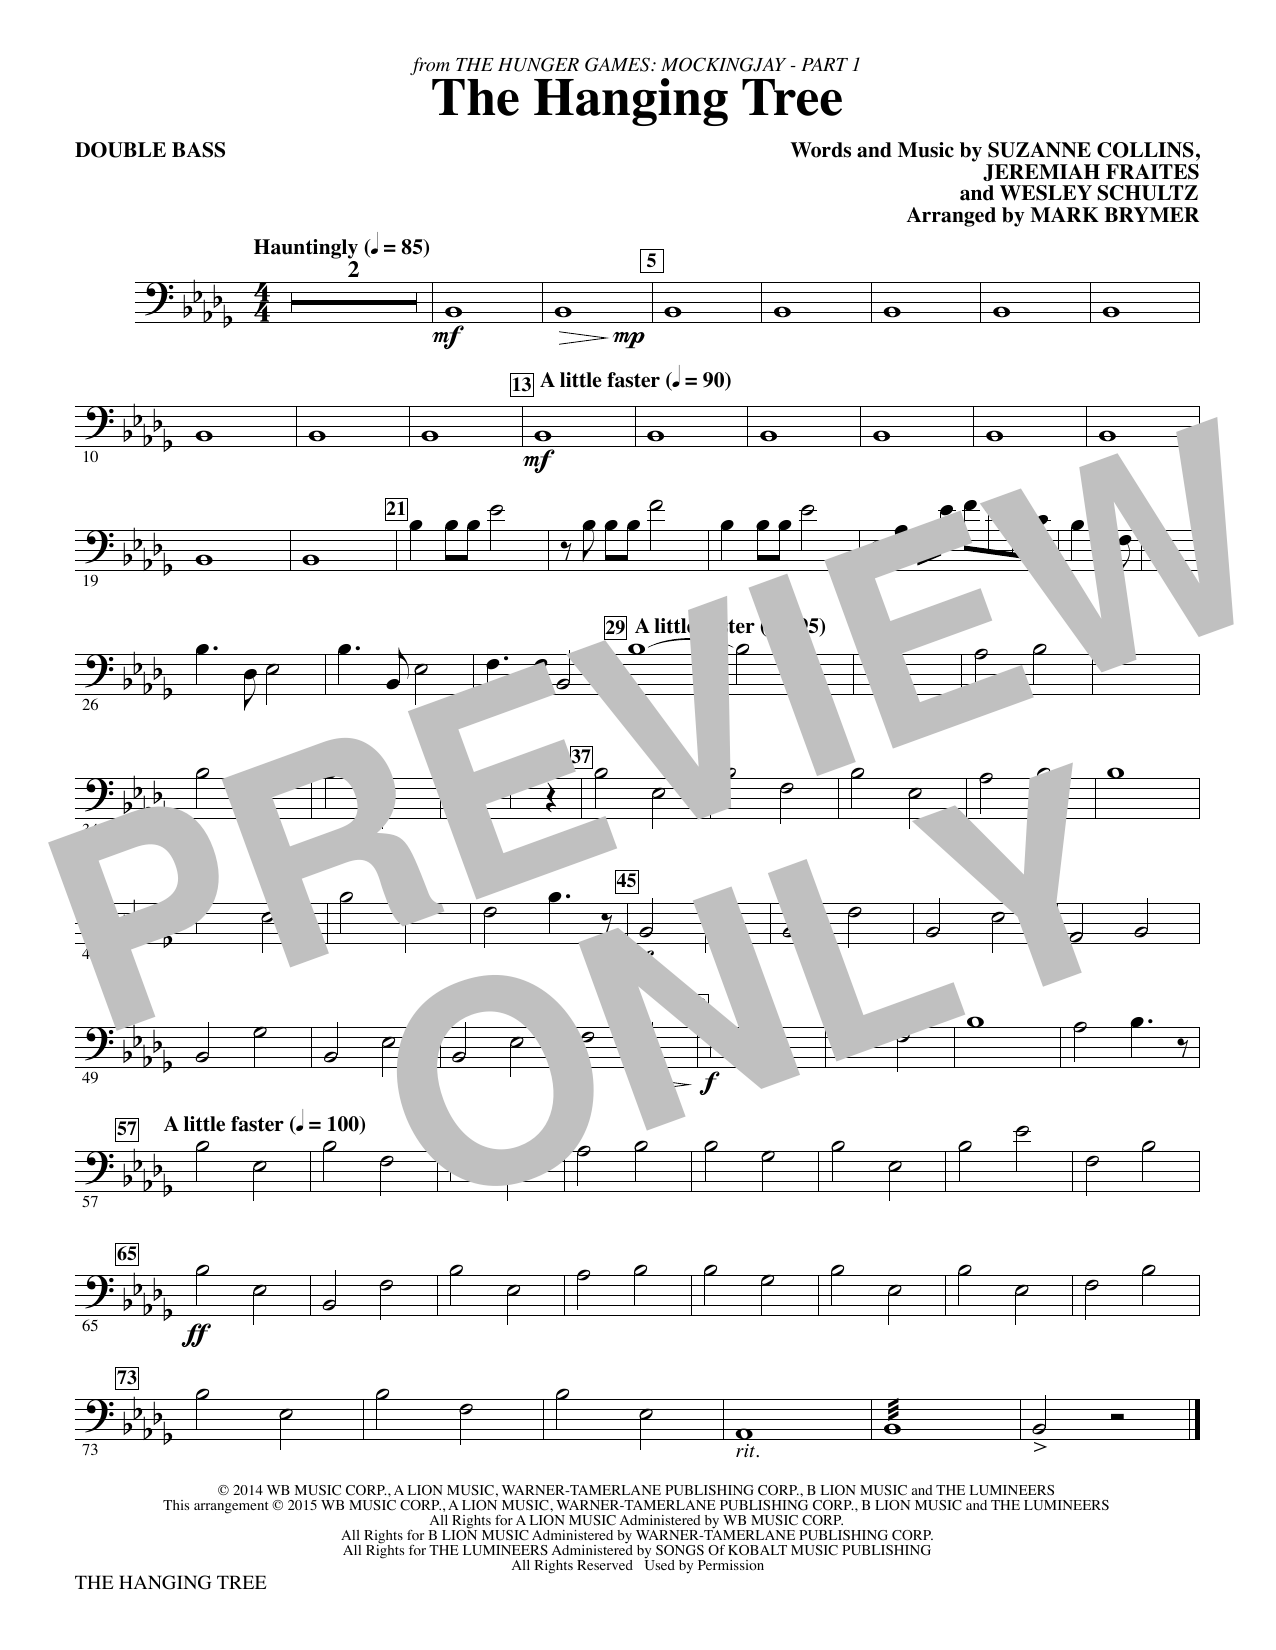 The Hanging Tree (from The Hunger Games: Mockingjay Part I) - Double Bass Sheet Music